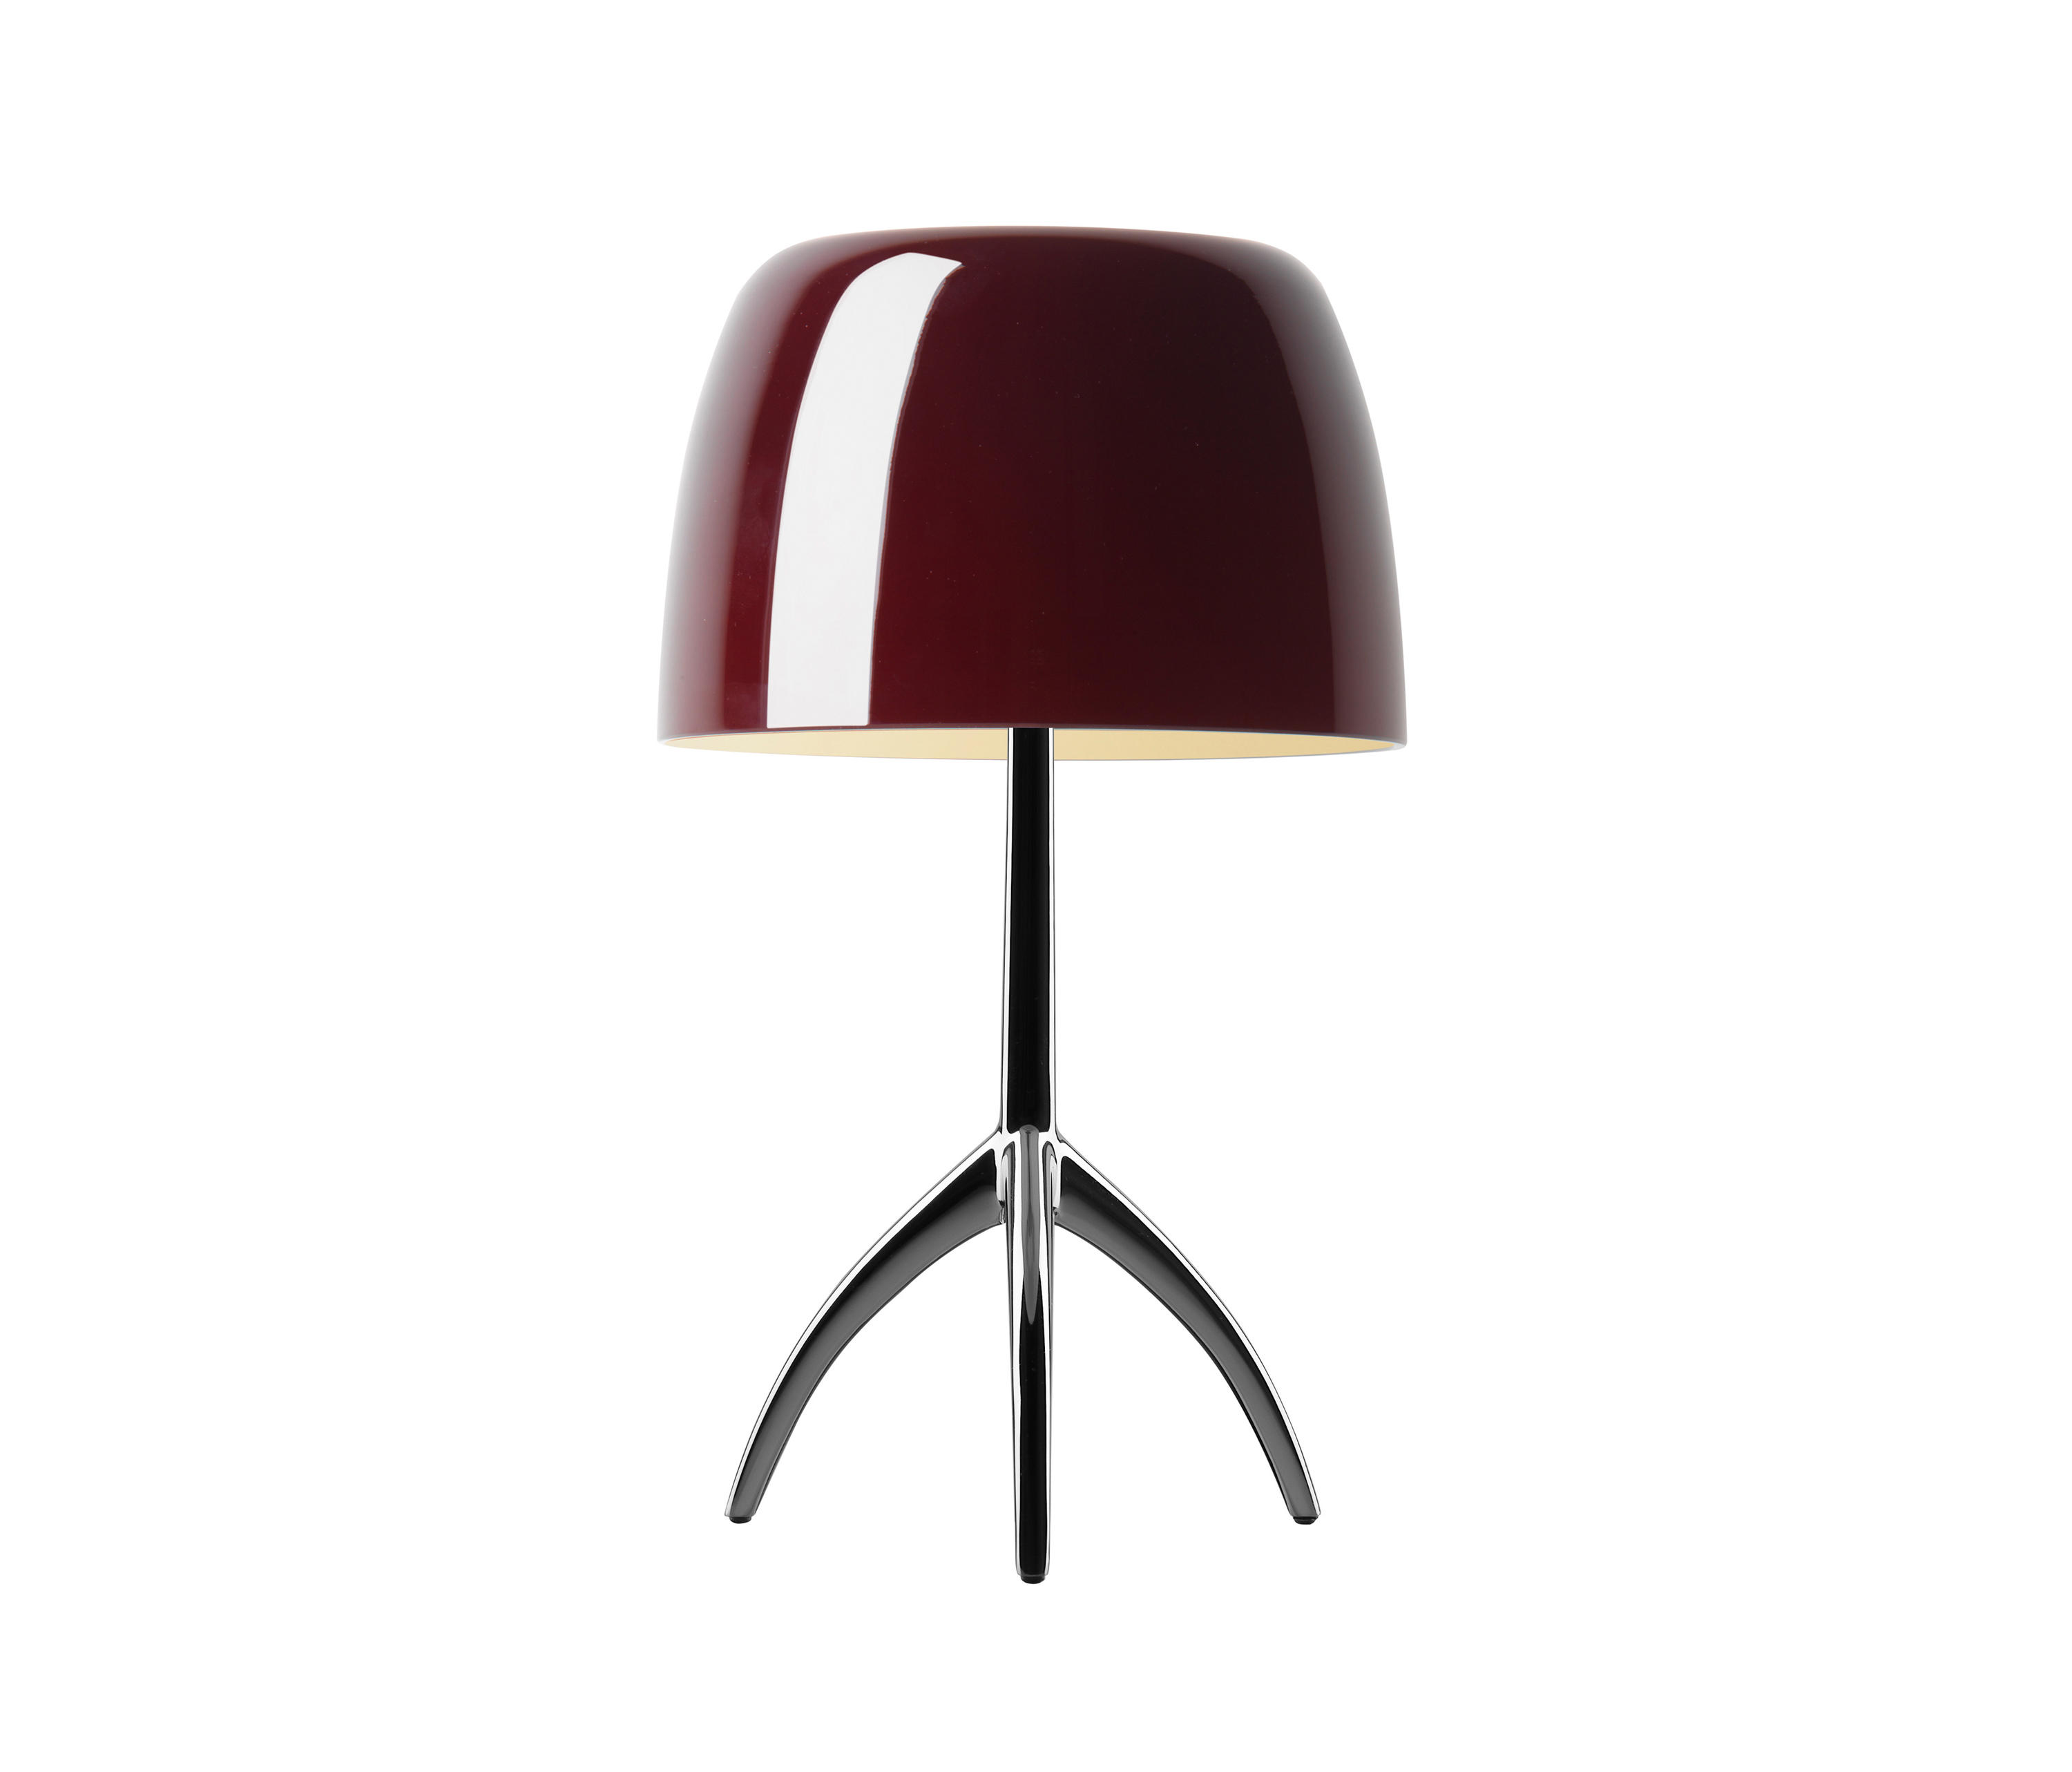 Lumiere table lamp general lighting from foscarini architonic - Foscarini lumiere table lamp ...